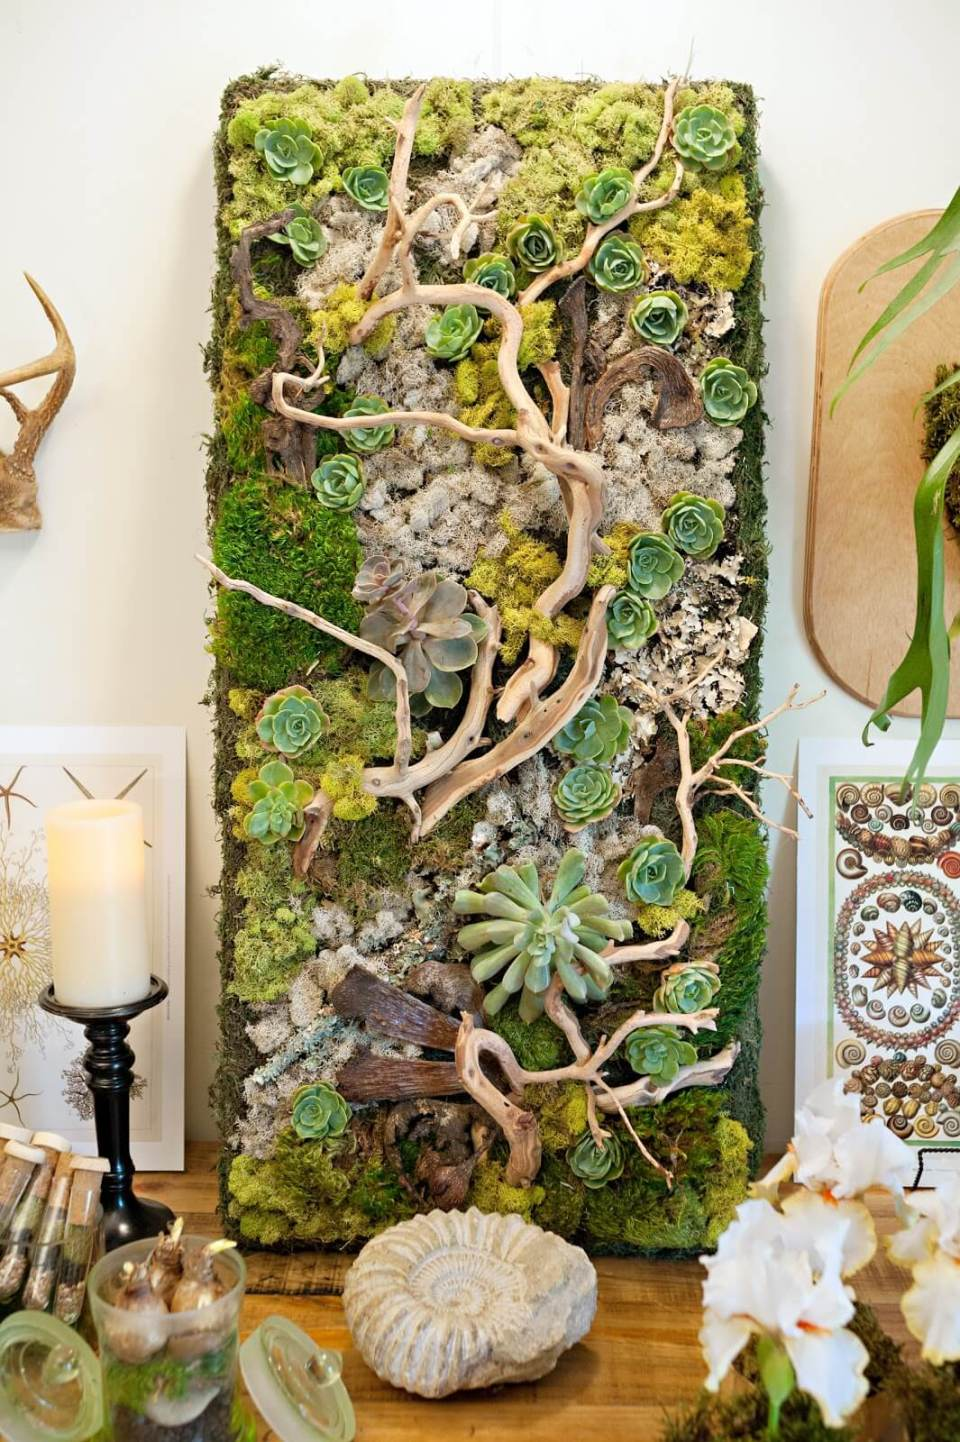 Embellished Wall Panel Showcases Succulents and Driftwood